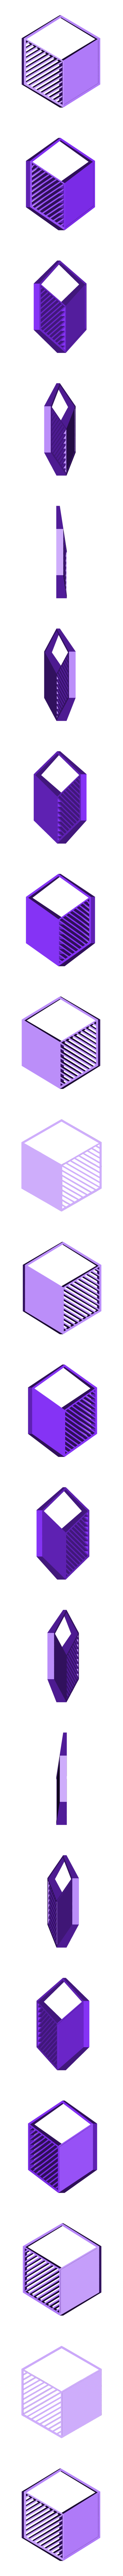 3D Cube_2_overlay.STL Download free STL file Cube Furniture Overlay • Design to 3D print, DDDeco